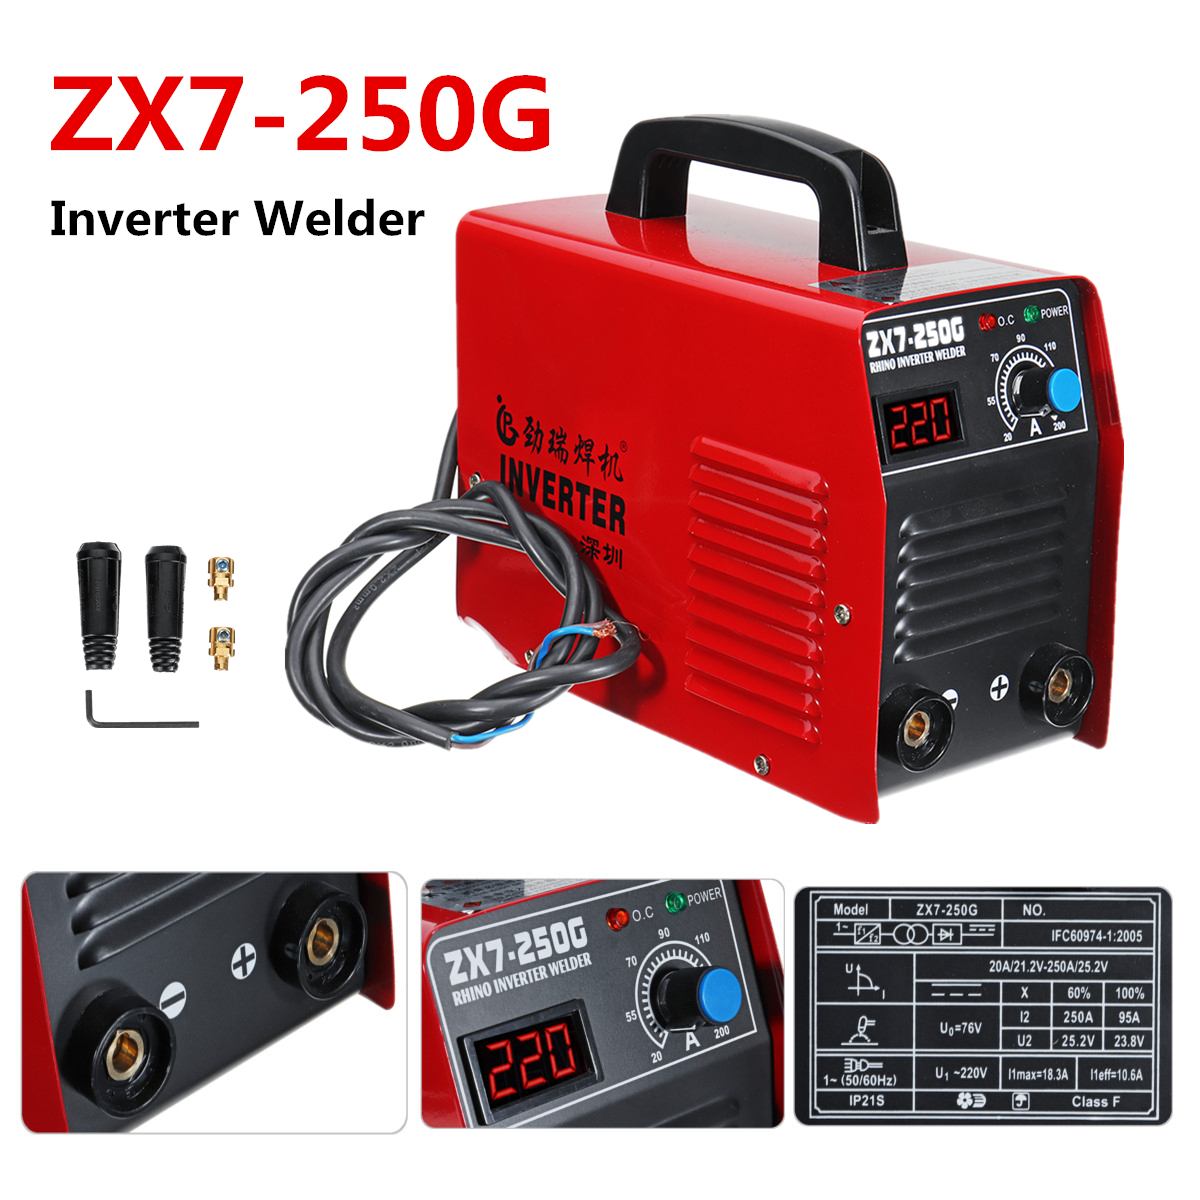 ZX7-250G IGBT Portable 200AMP 60W Welding Inverter Machine Arc Welders For DIY Welding Working And Electric Working